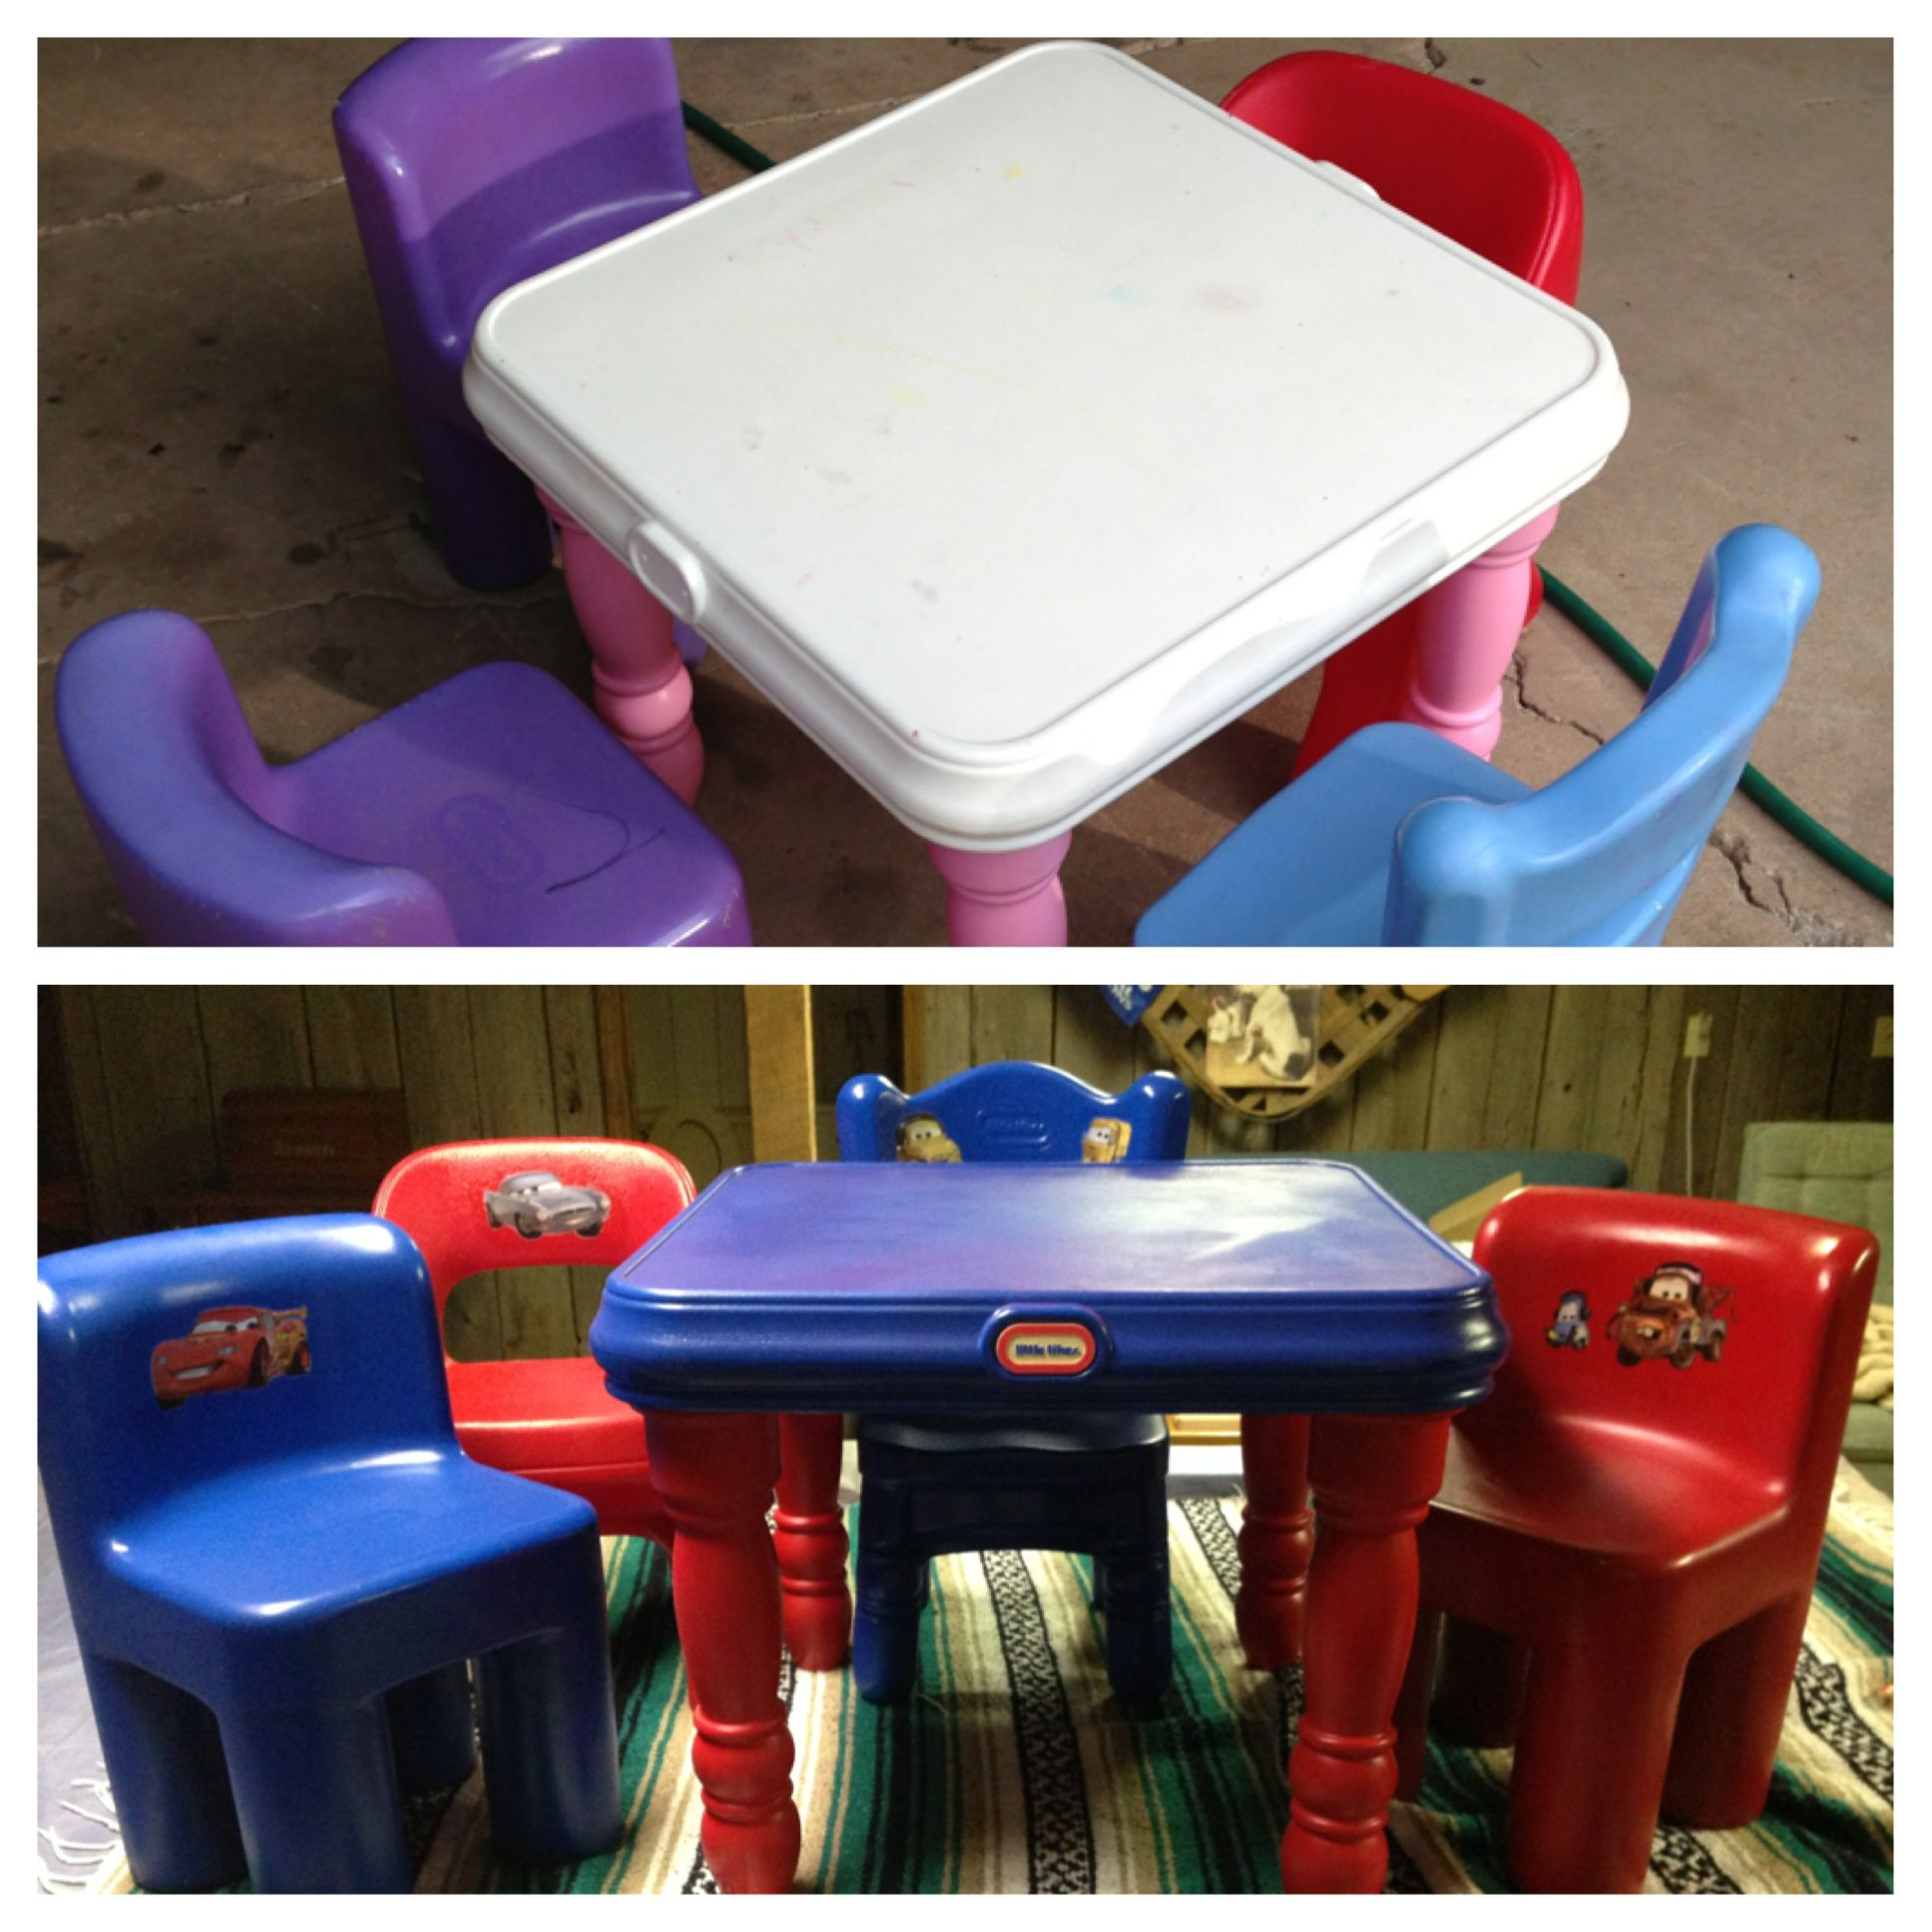 Diy Little Tikes Table And Chairs We Used Krylon Fusion Spray Paint For Plastic And Mod Podged